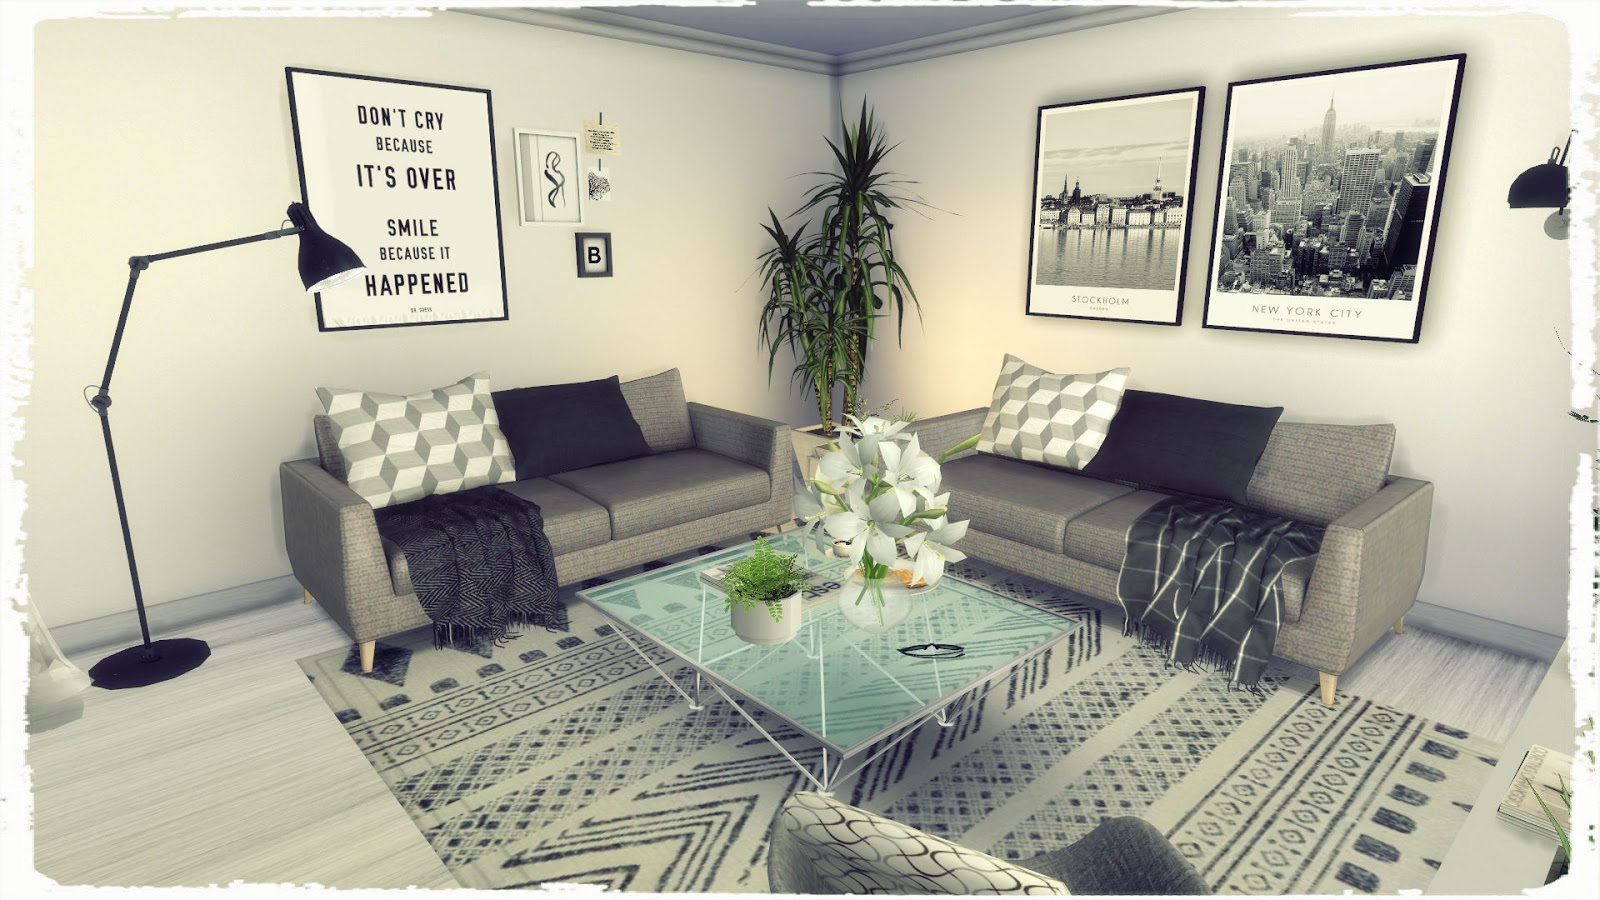 Sims 4 Grey Deco Livingroom Build Decoration For For Living Room Ideas Sims  4